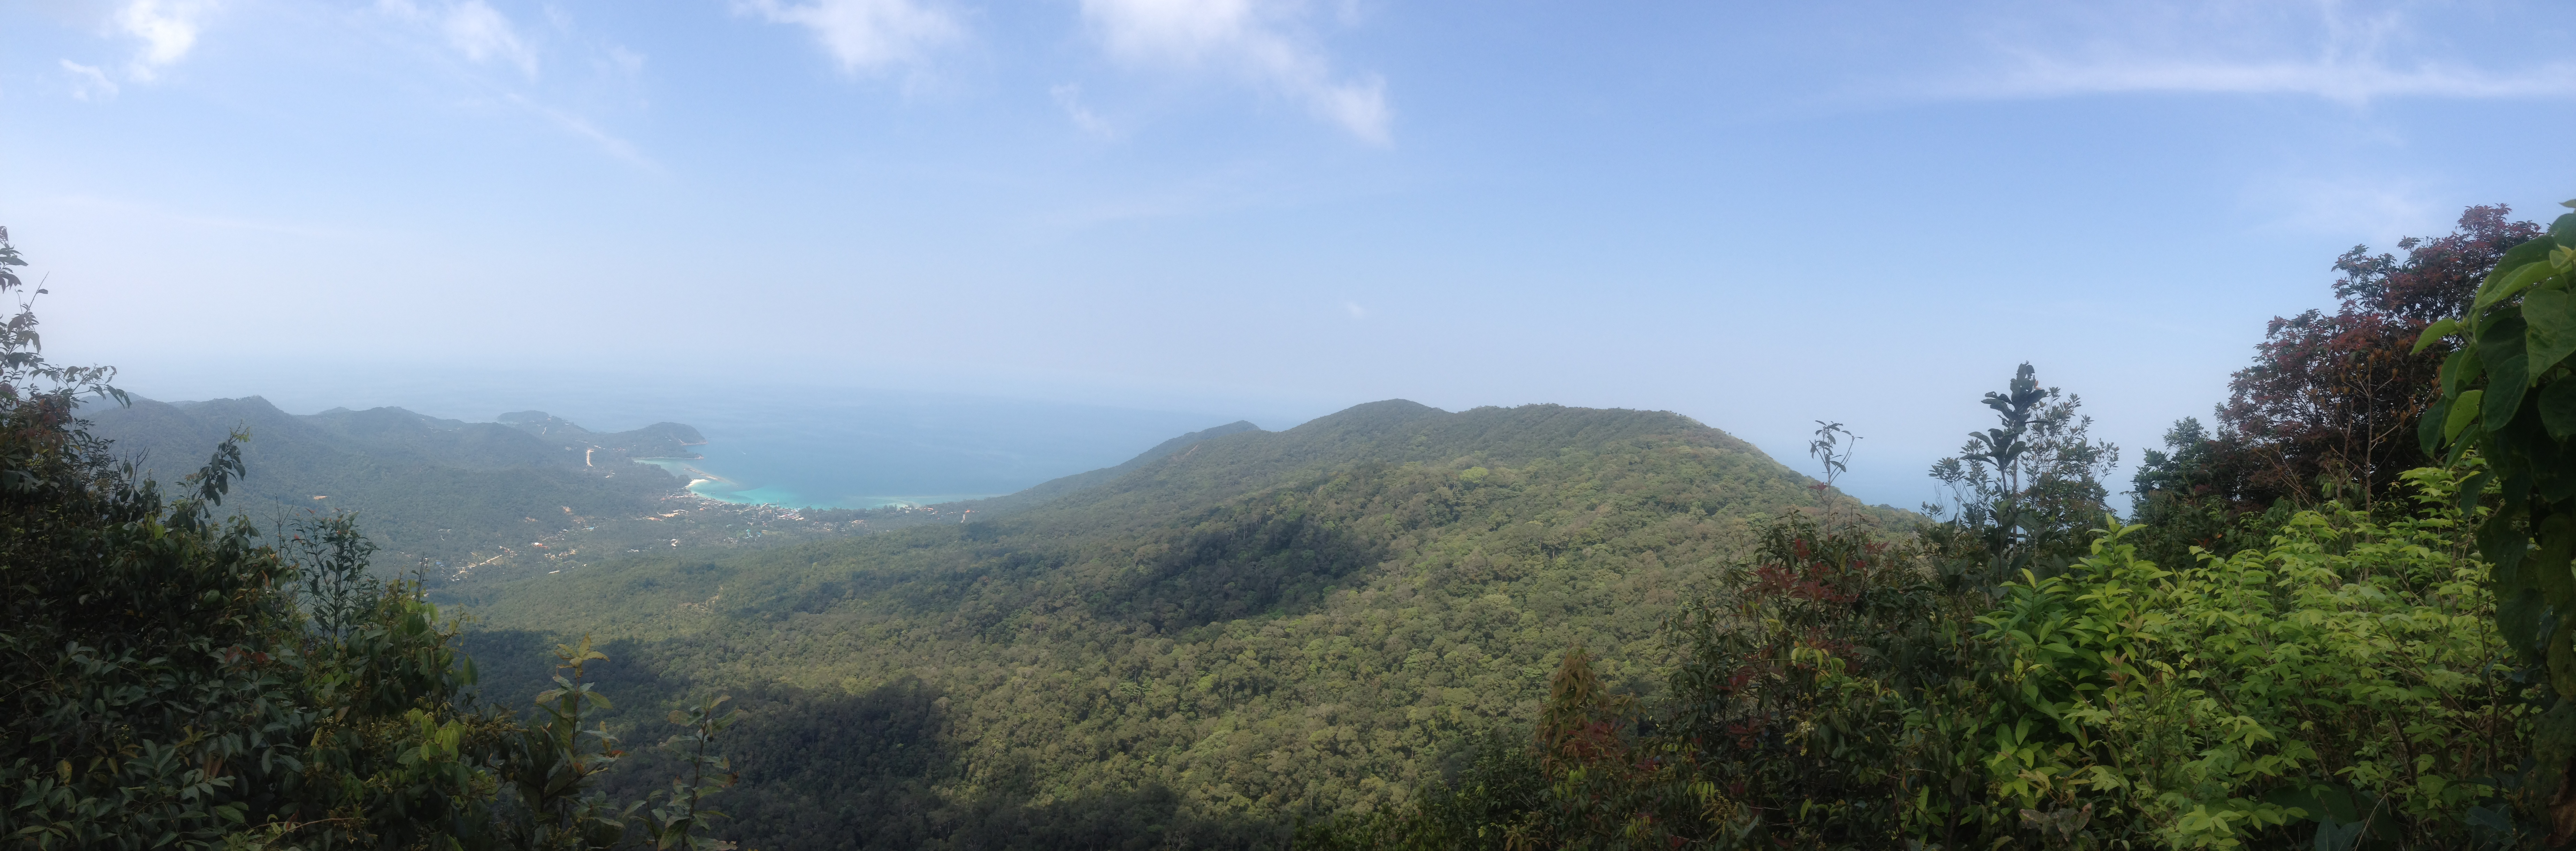 The view from Khao Ra, the highest point on Koh Phangan